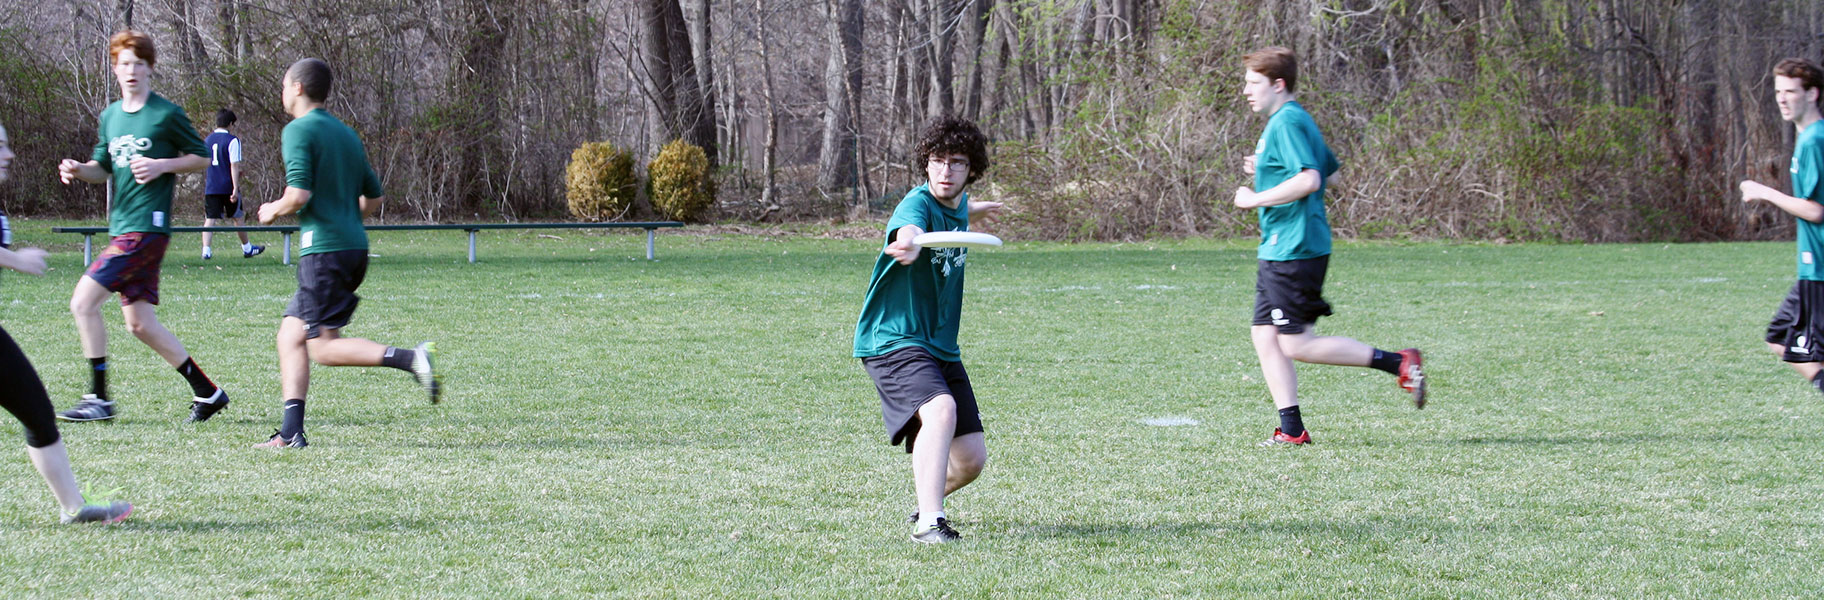 Co-ed Ultimate Frisbee at Concord Academy